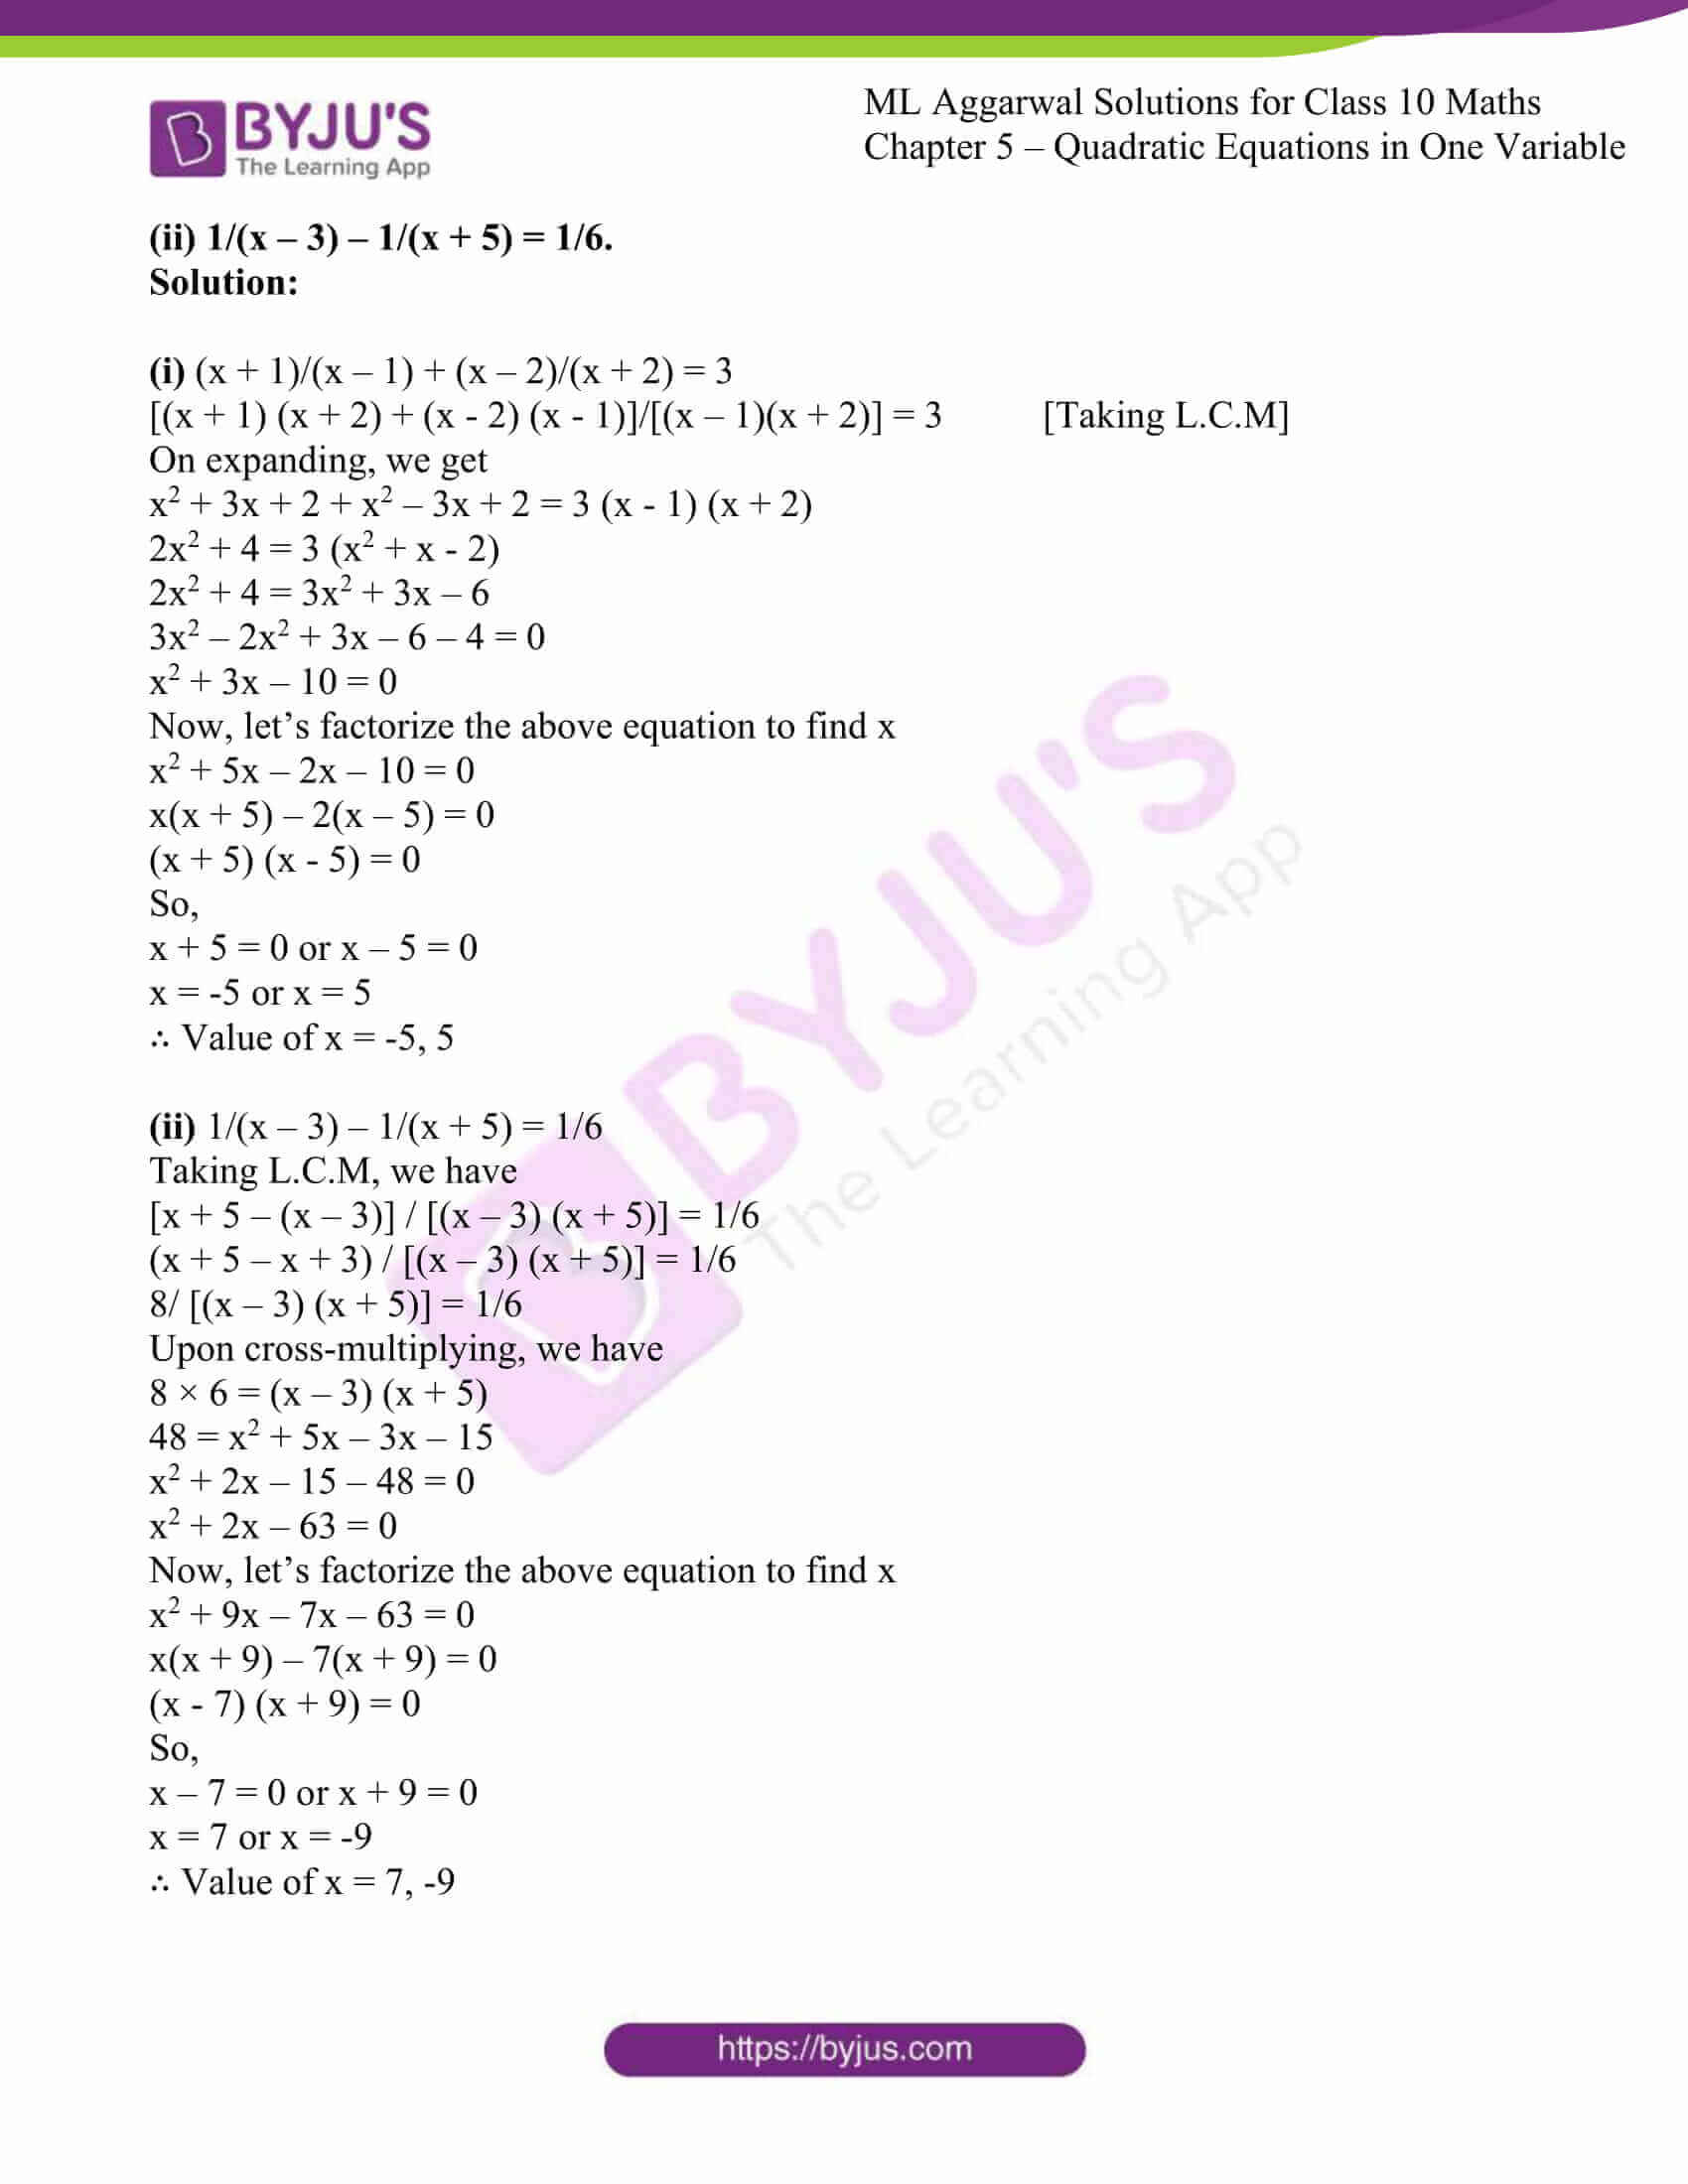 ml aggarwal solutions class 10 maths chapter 5 16